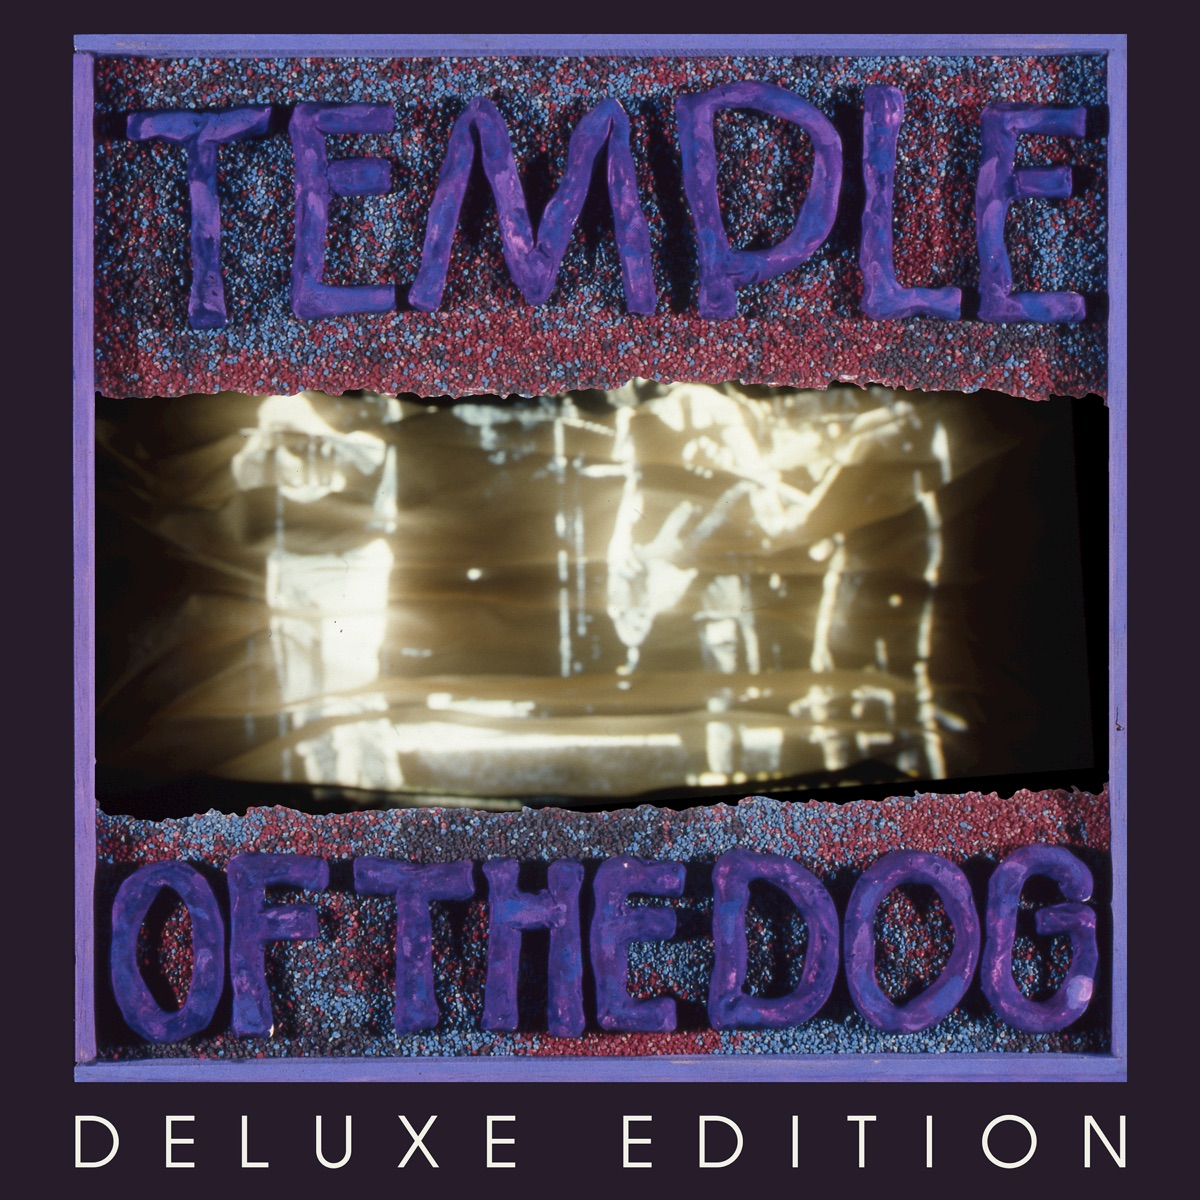 Angel of Fire Demo - Single Temple of the Dog CD cover